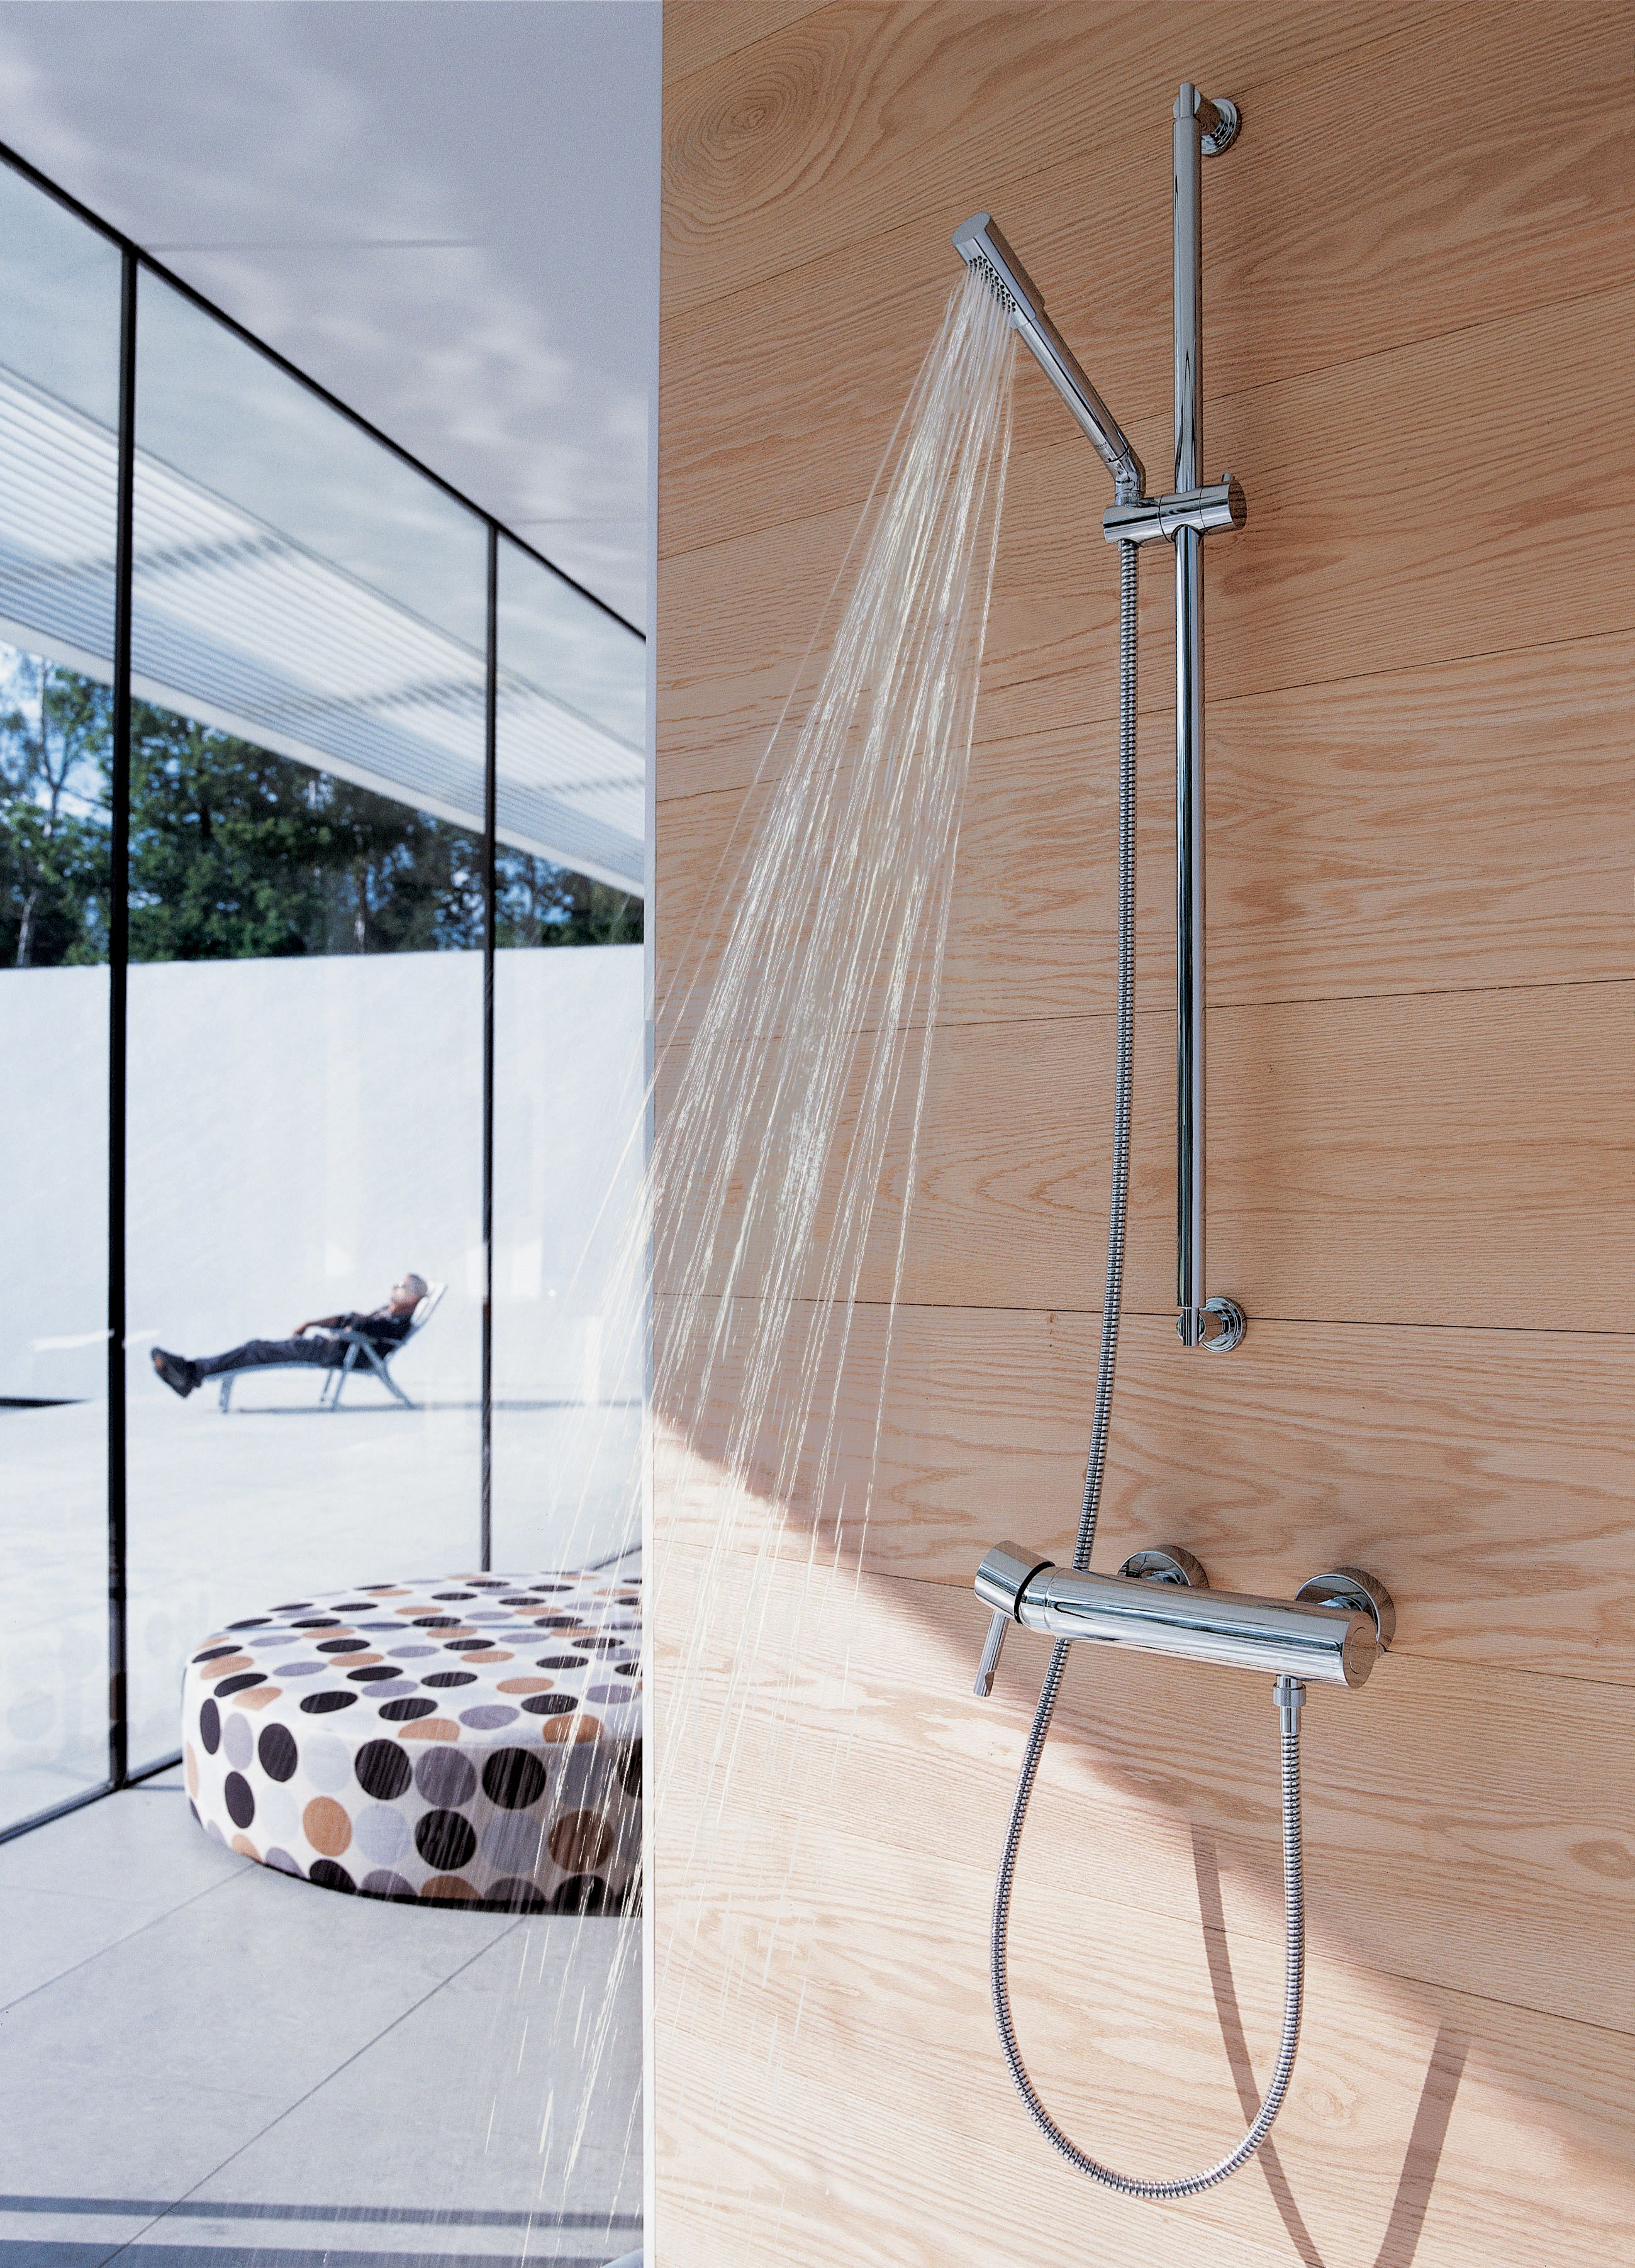 GROHE Sena : The Preferred Choice For Architectural Space #bathroorm #shower  @GROHE